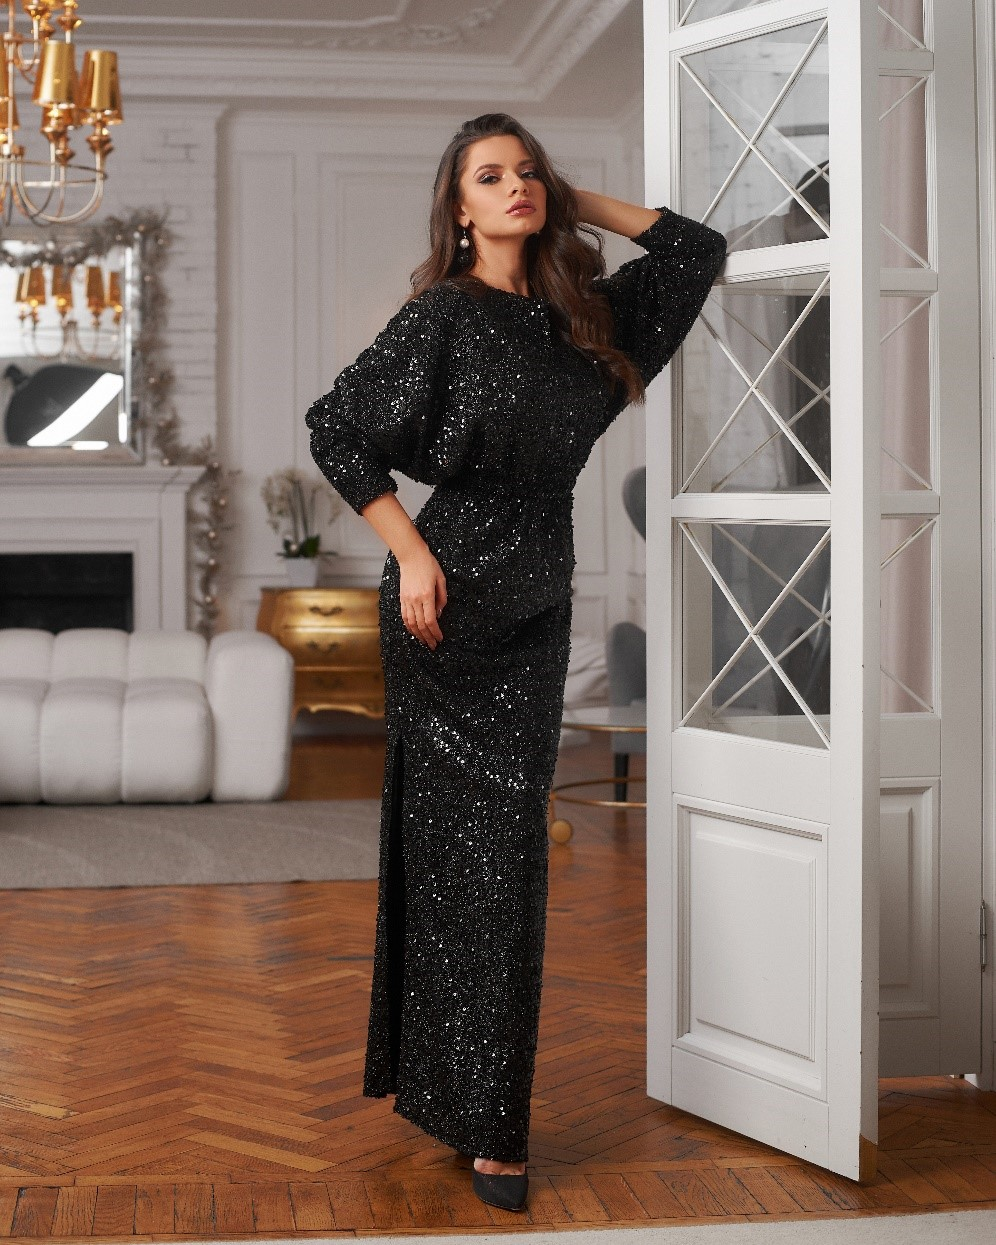 a-black-sequin-wedding-guest-dress